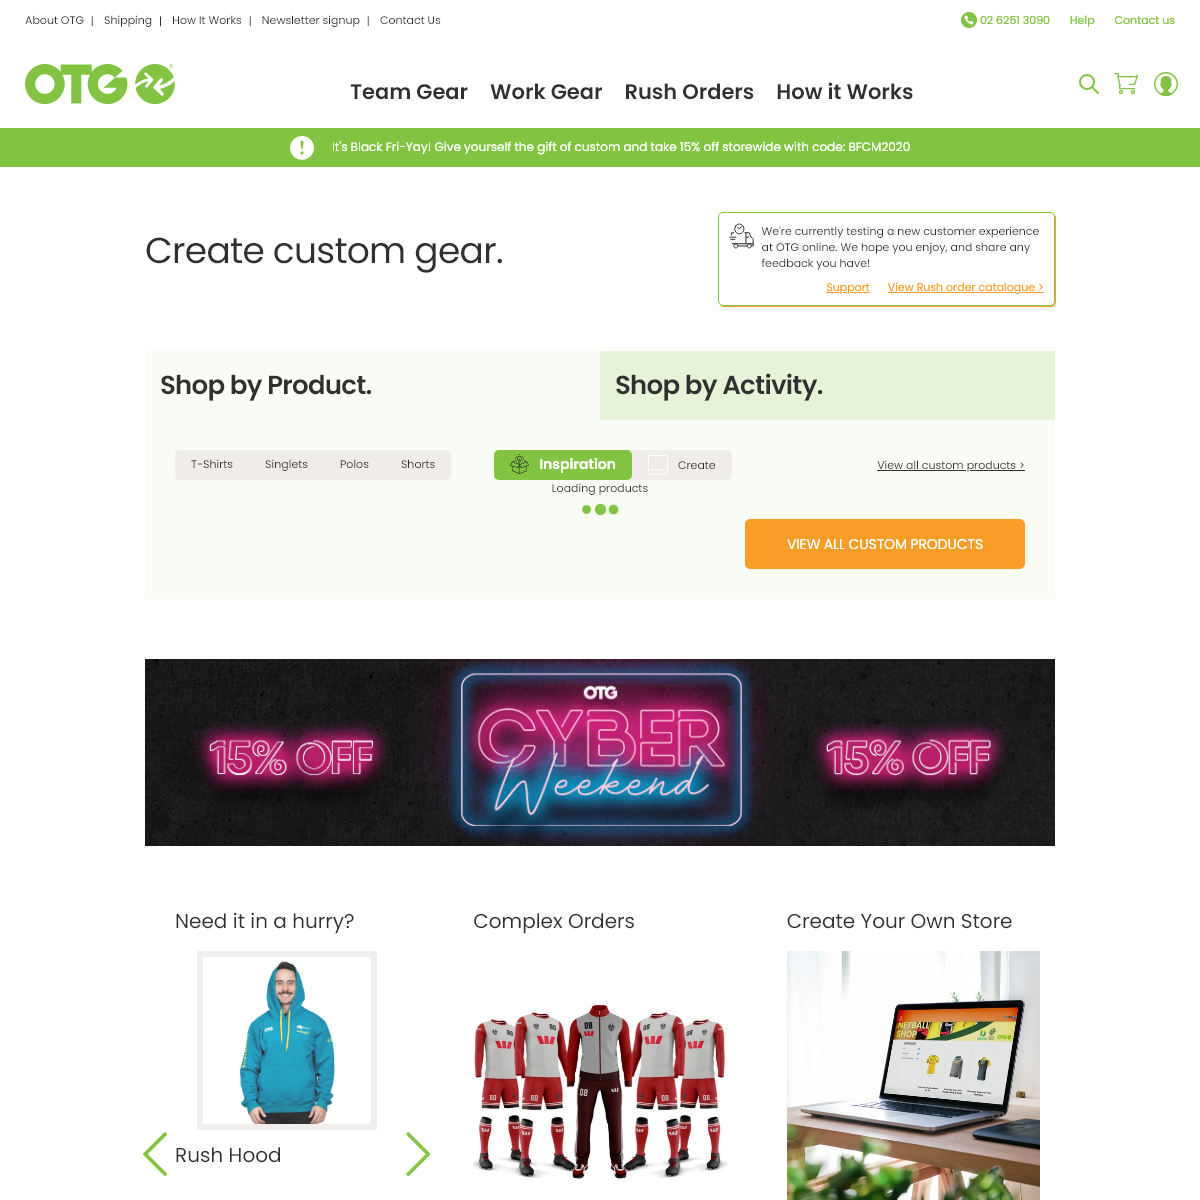 OTG - Create Custom Gear